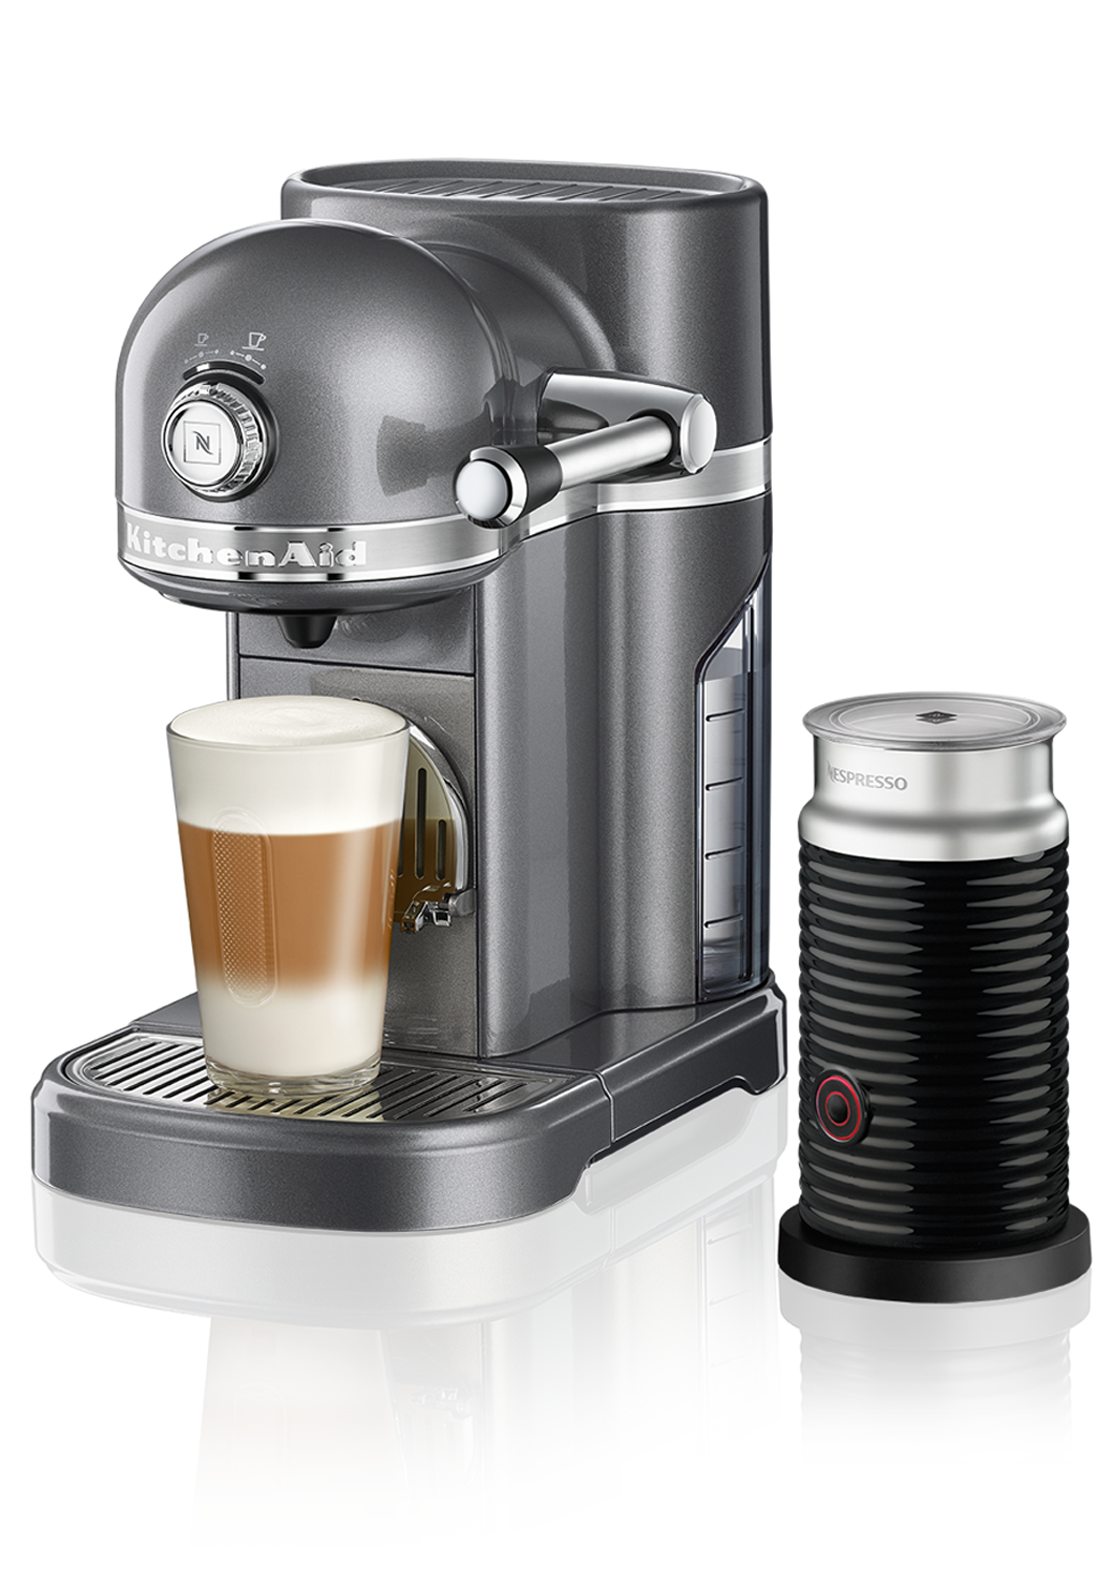 Nespresso KitchenAid Coffee Machine with Aeroccino, Medallion Silver